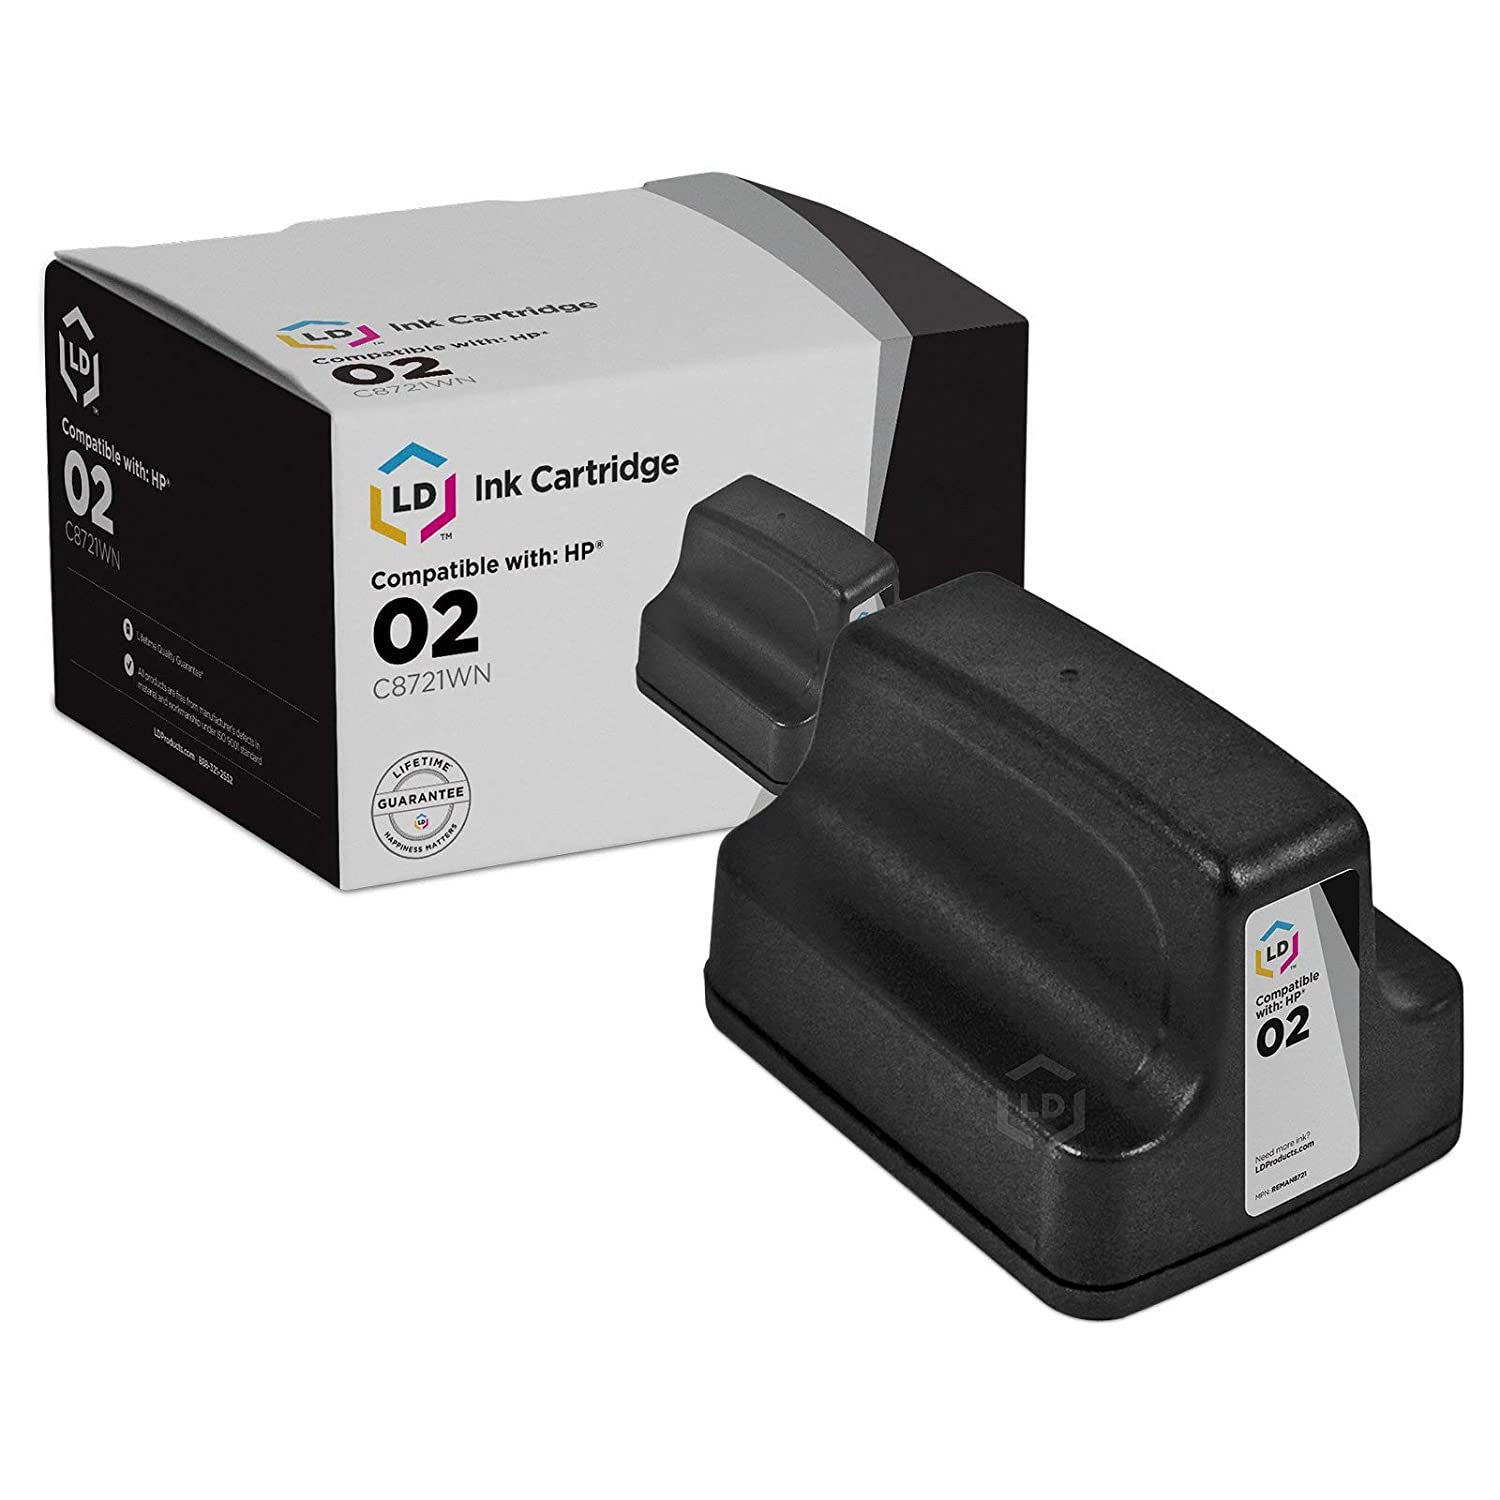 Amazon.com: LD Remanufactured Ink Cartridge Replacement for HP 02 C8721WN  (Black): Electronics